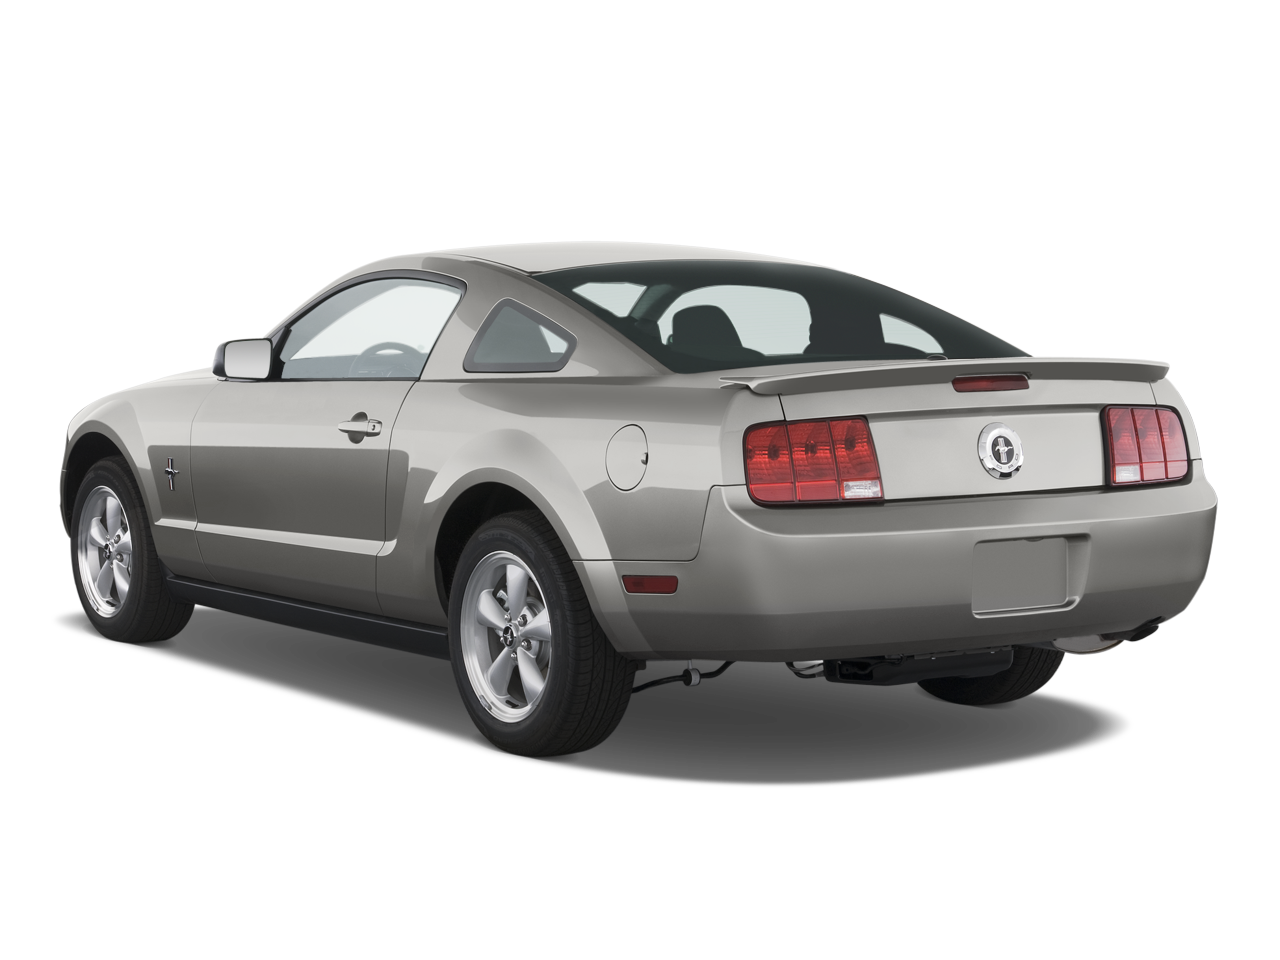 2009 Mustang Gt Specs >> 2009 Ford Mustang GT Coupe Premium - Ford Sport Coupe Review - Automobile Magazine